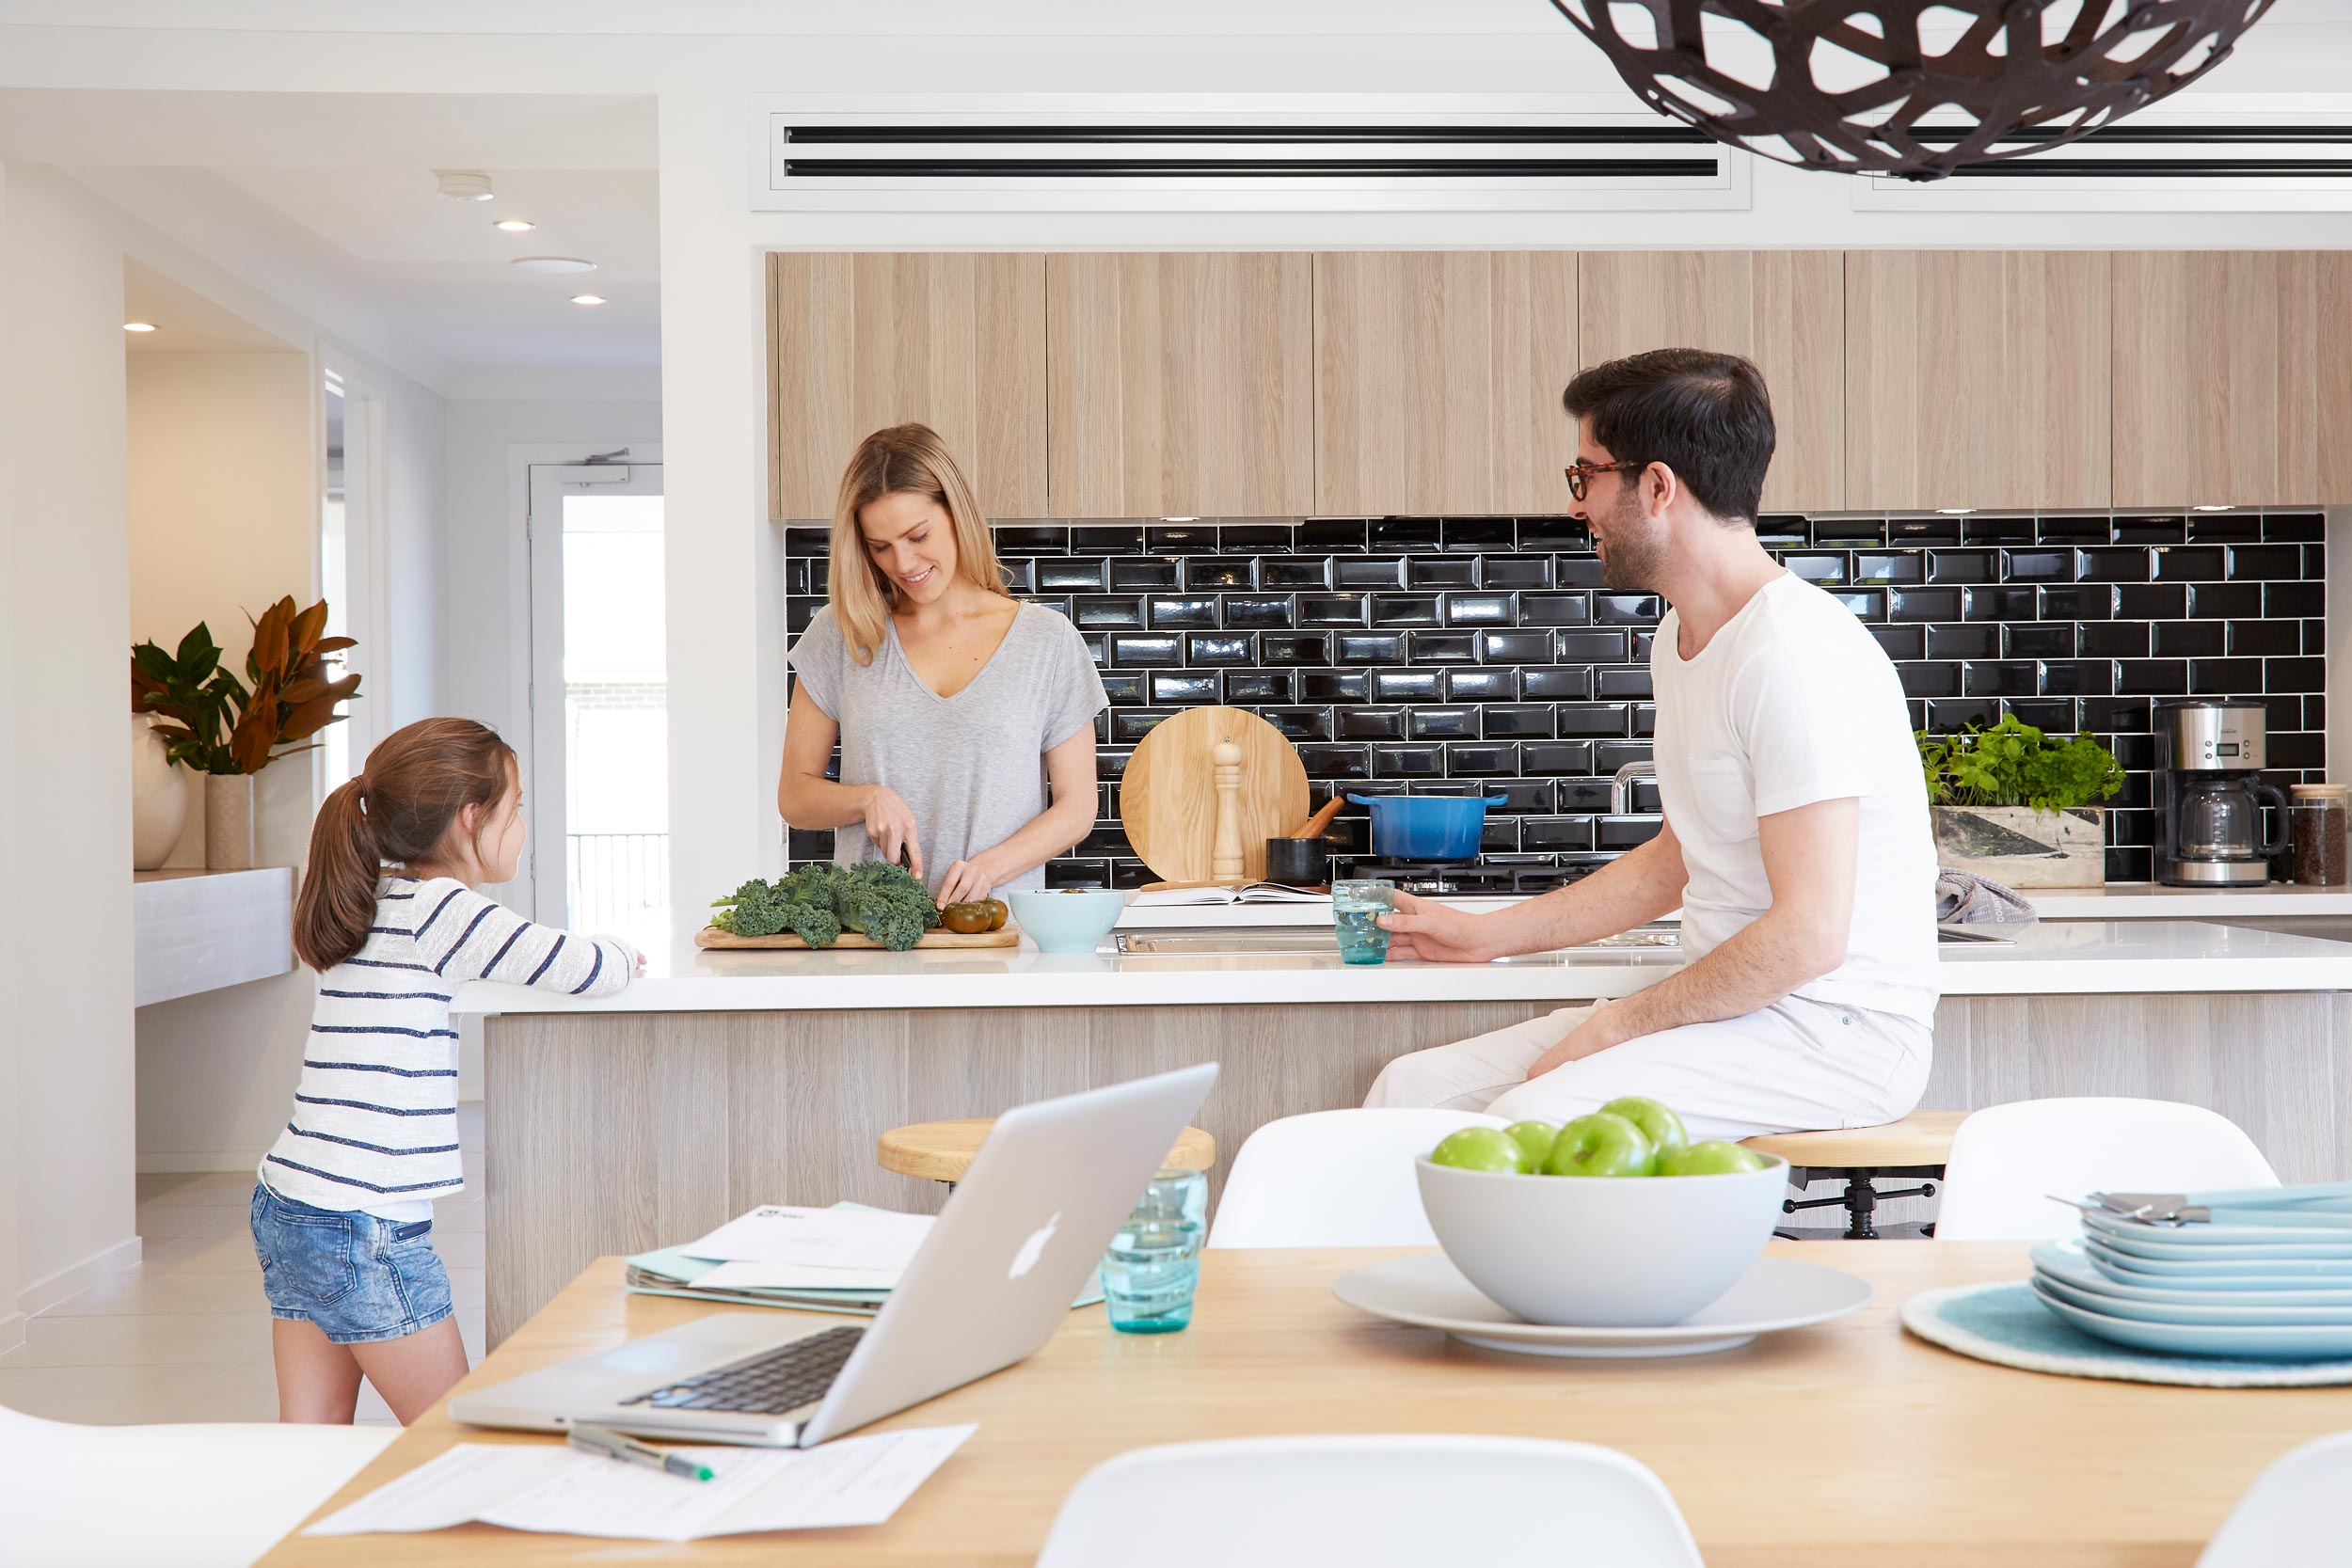 Family of 3 enjoying time in modern kitchen with air conditioning ducts in ceiling